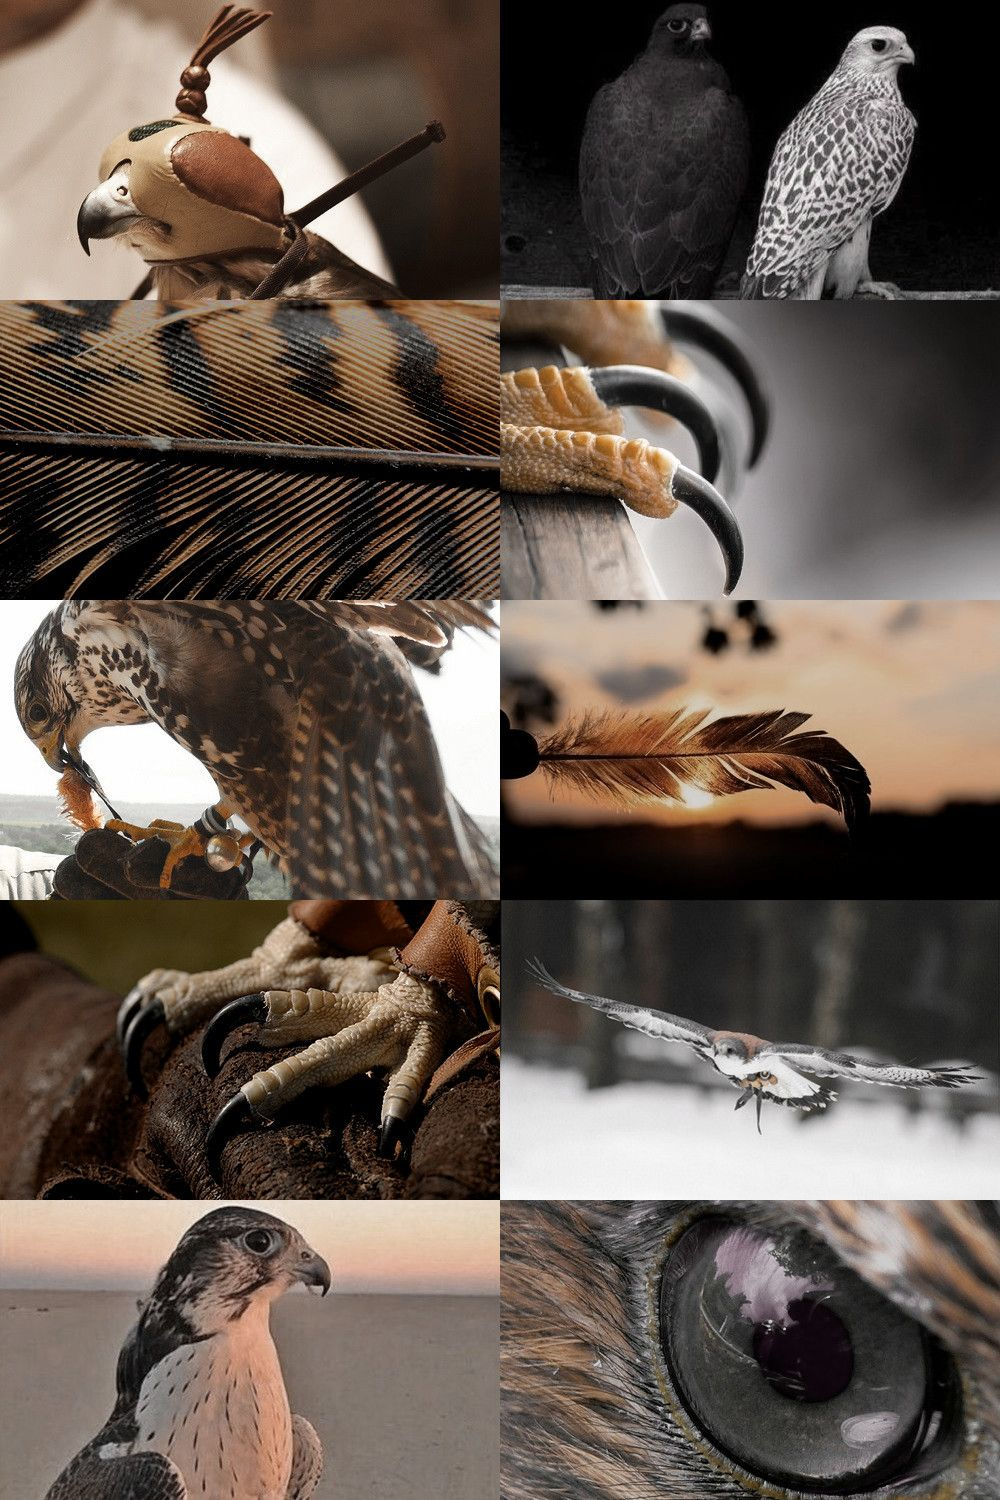 Falconry The Sport Of Hunting With Falcons Or Other Birds Of Prey The Keeping And Training Of Such Birds Birds Of Prey Falconry Hummingbirds Photography